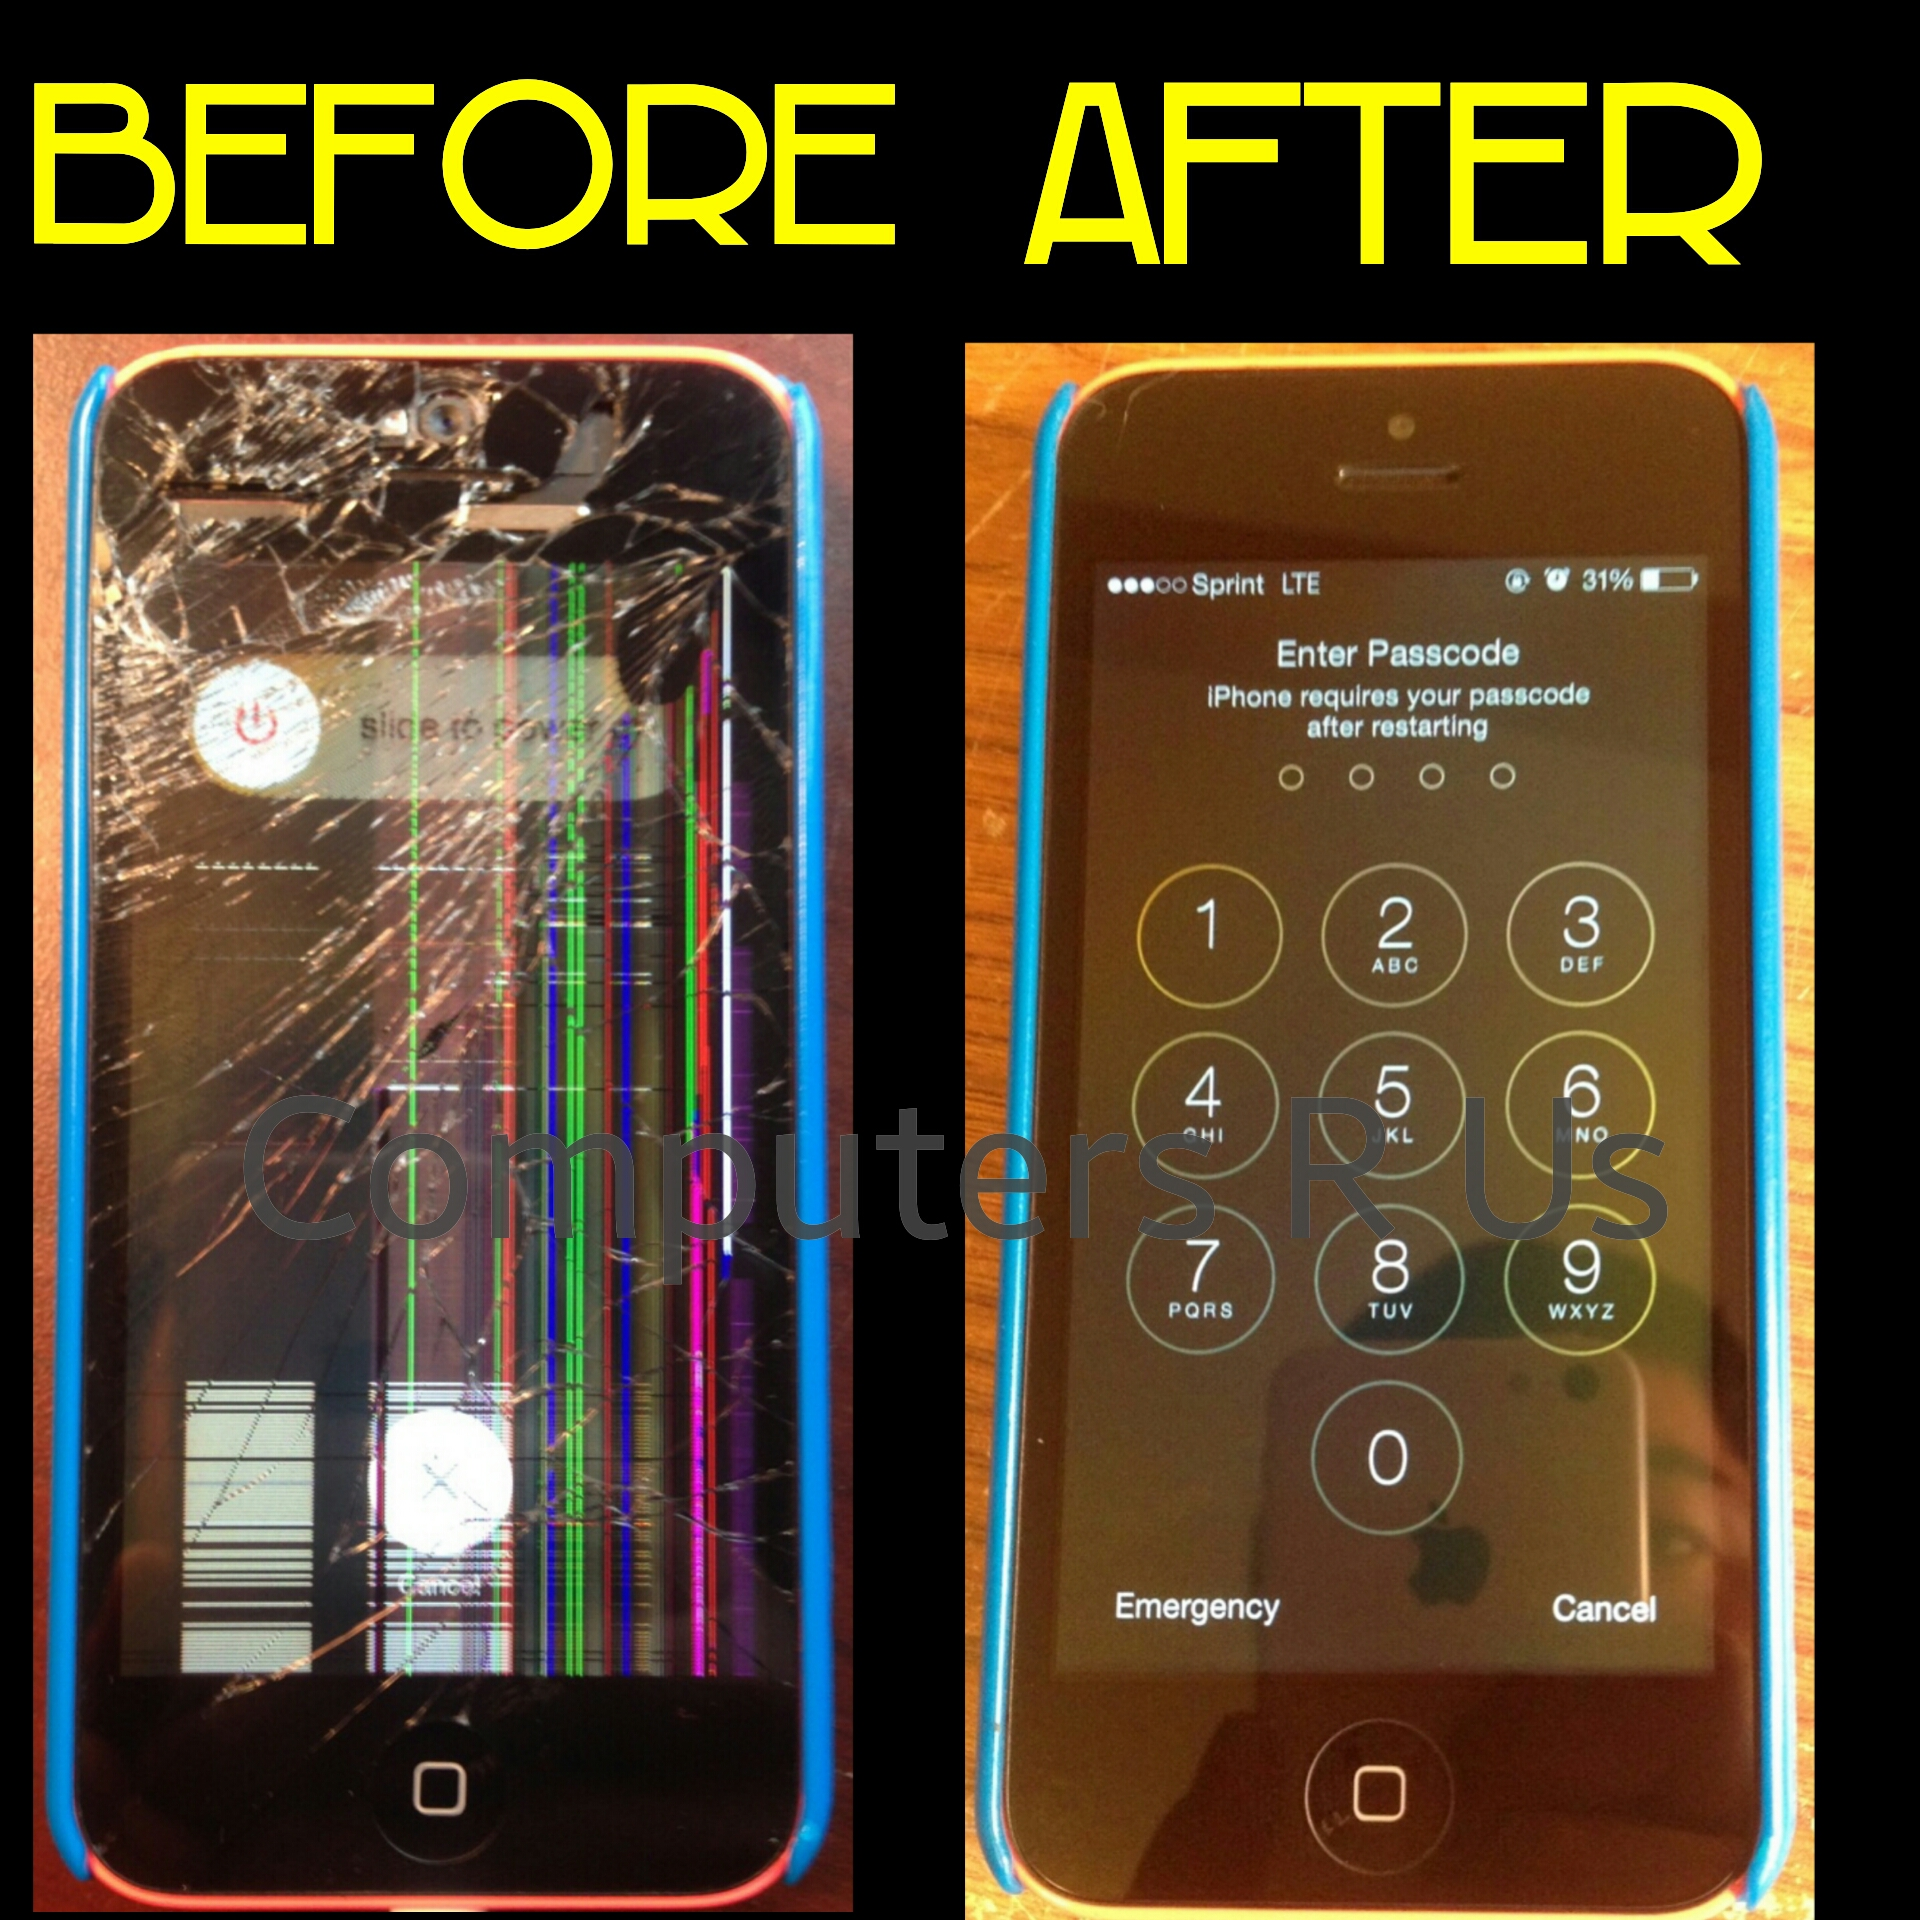 iPhone Glass and Screen Replaced - Before/After